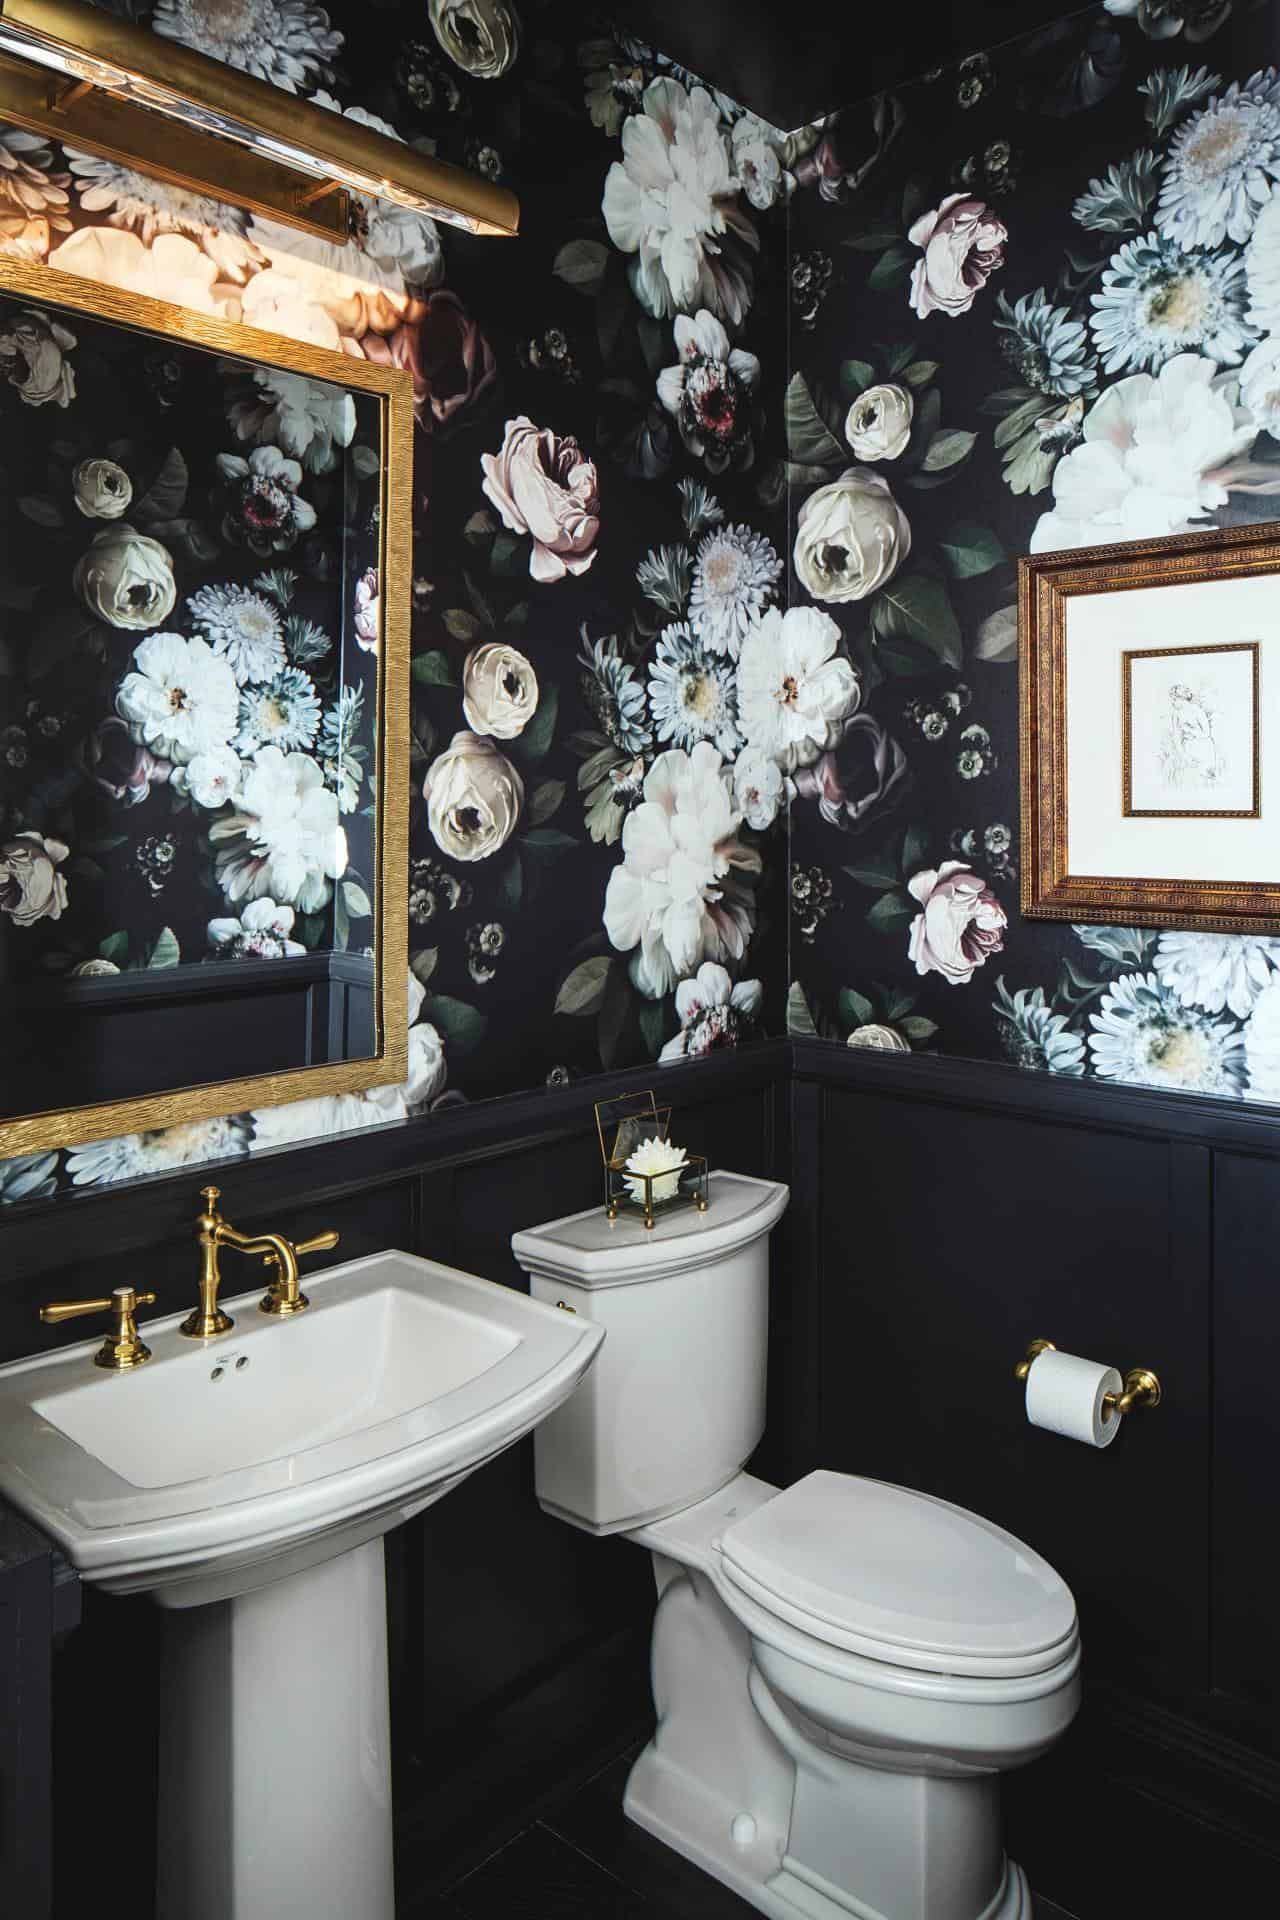 Bathroom wallpapers that will inspire your next home upgrade